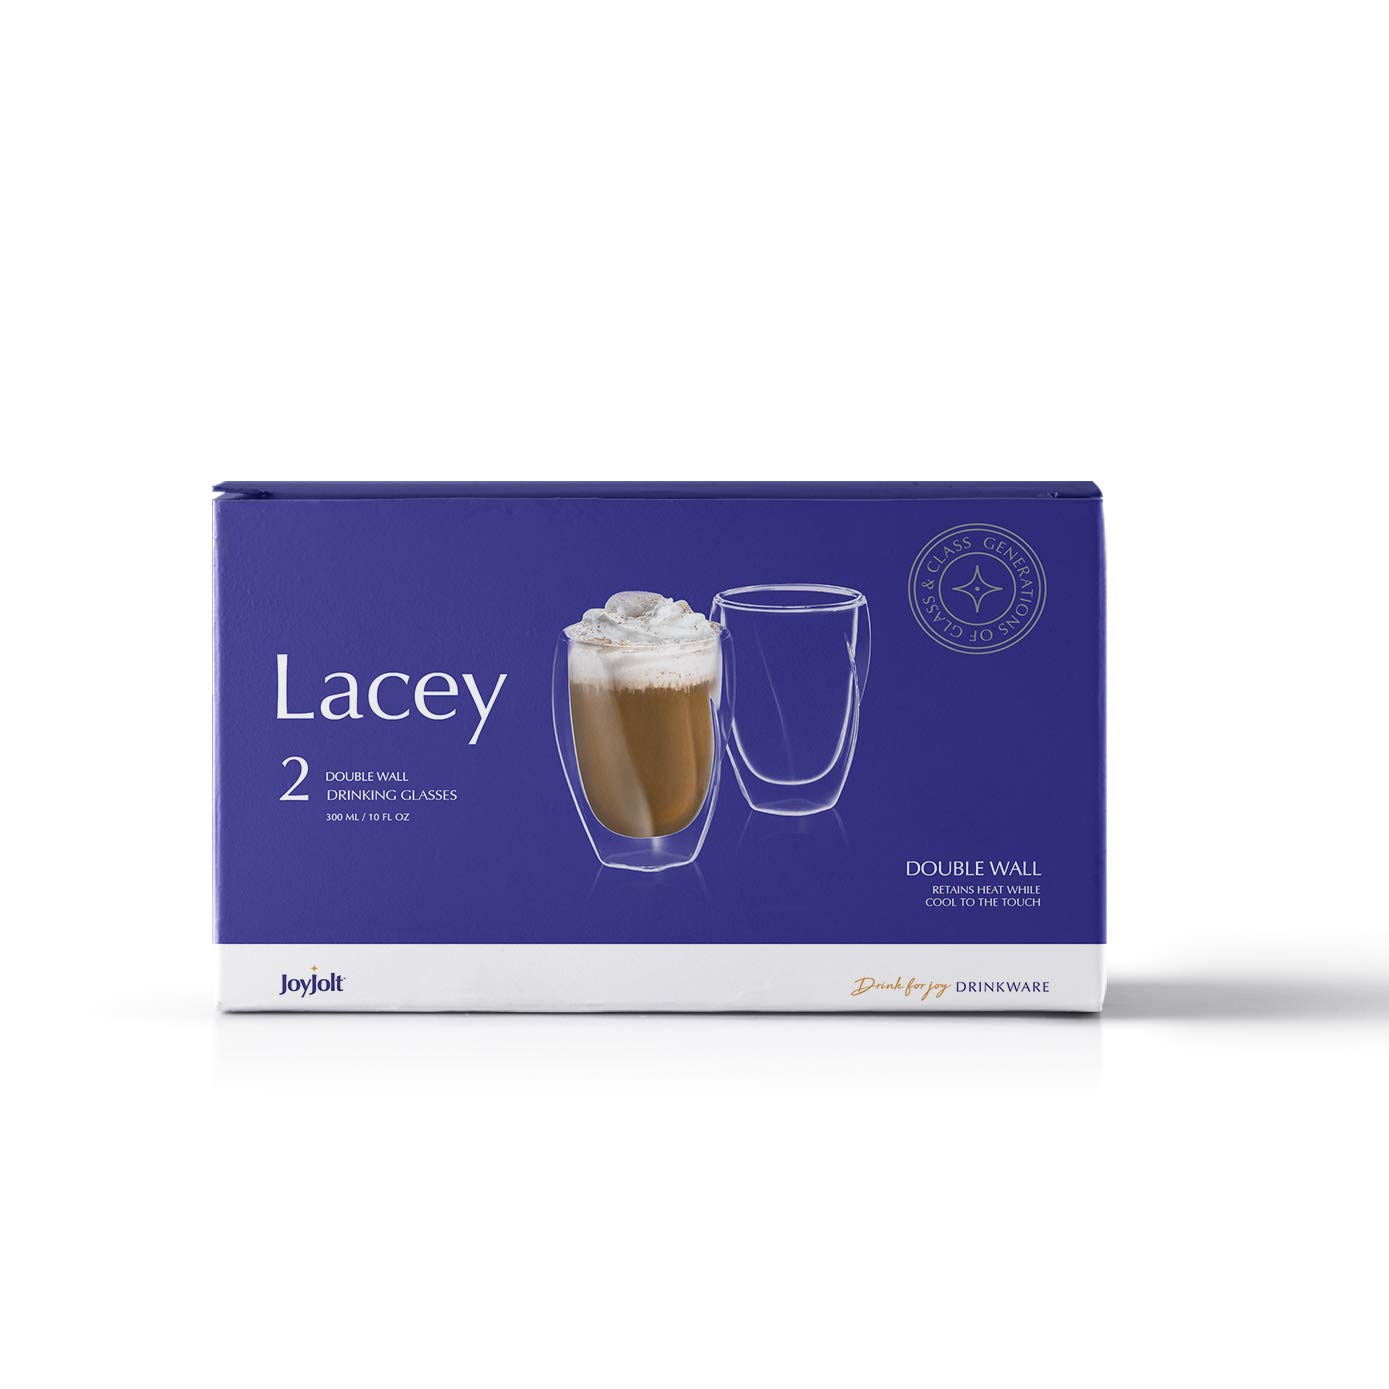 JoyJolt Lacey Double Wall Glasses Set of 2 Thermo Insulated Tumblers 10-Ounces.